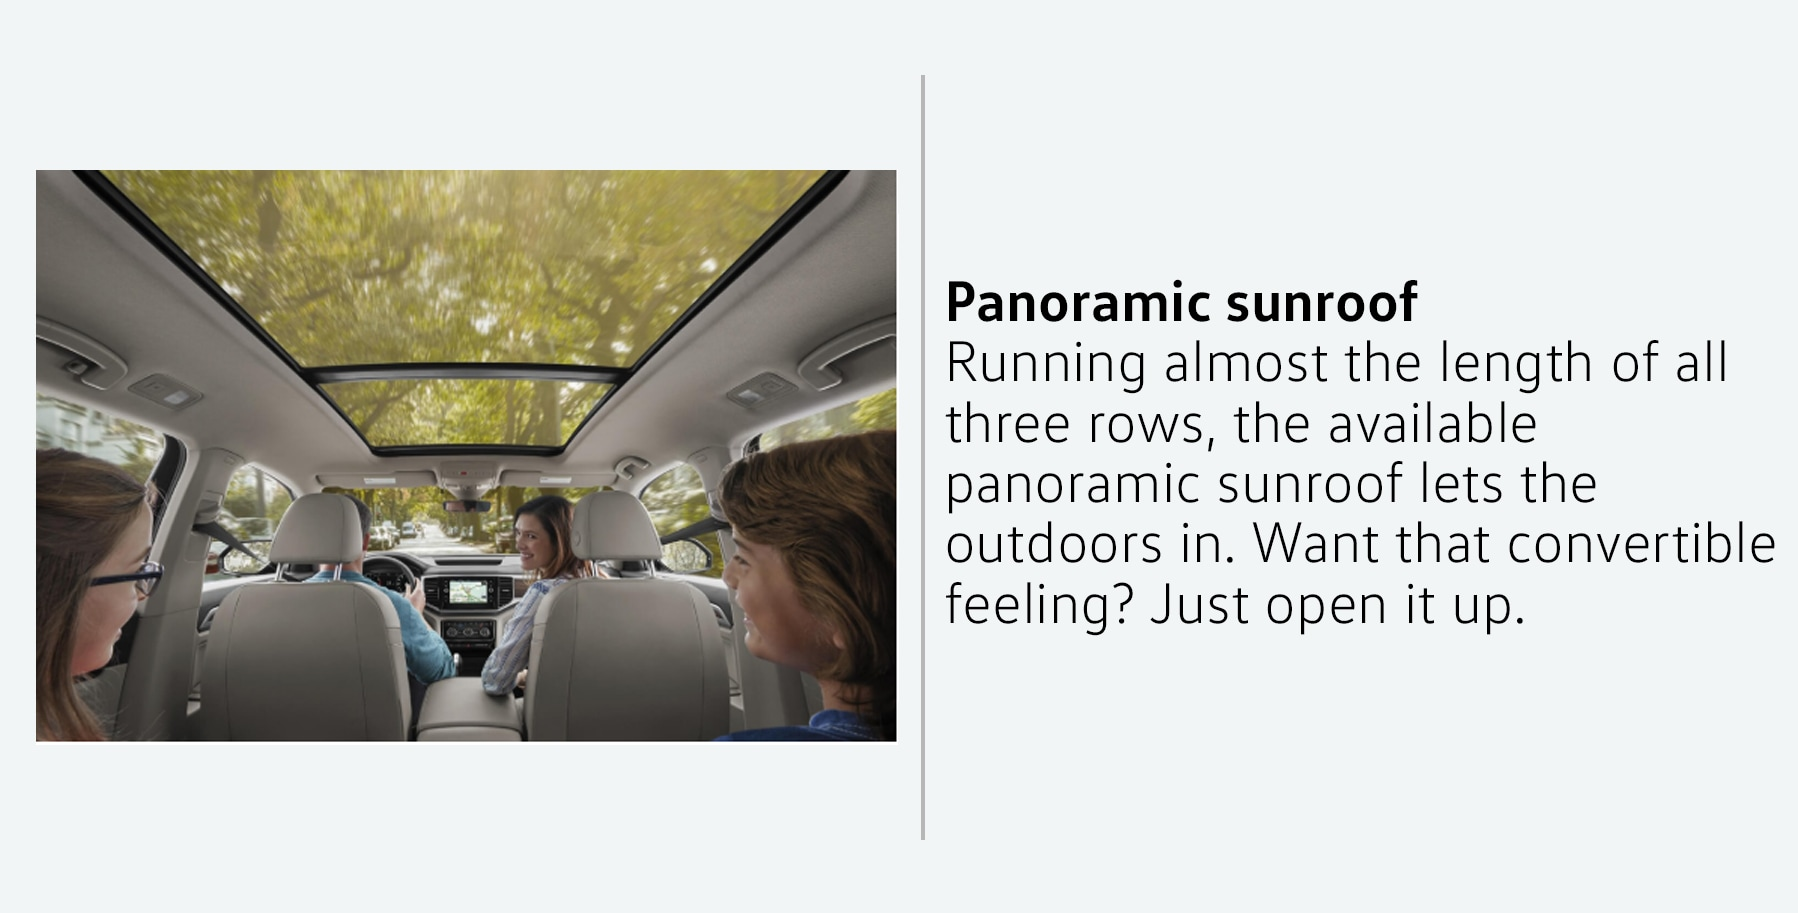 2019 Volkswagen Atlas SUV panoramic sunroof